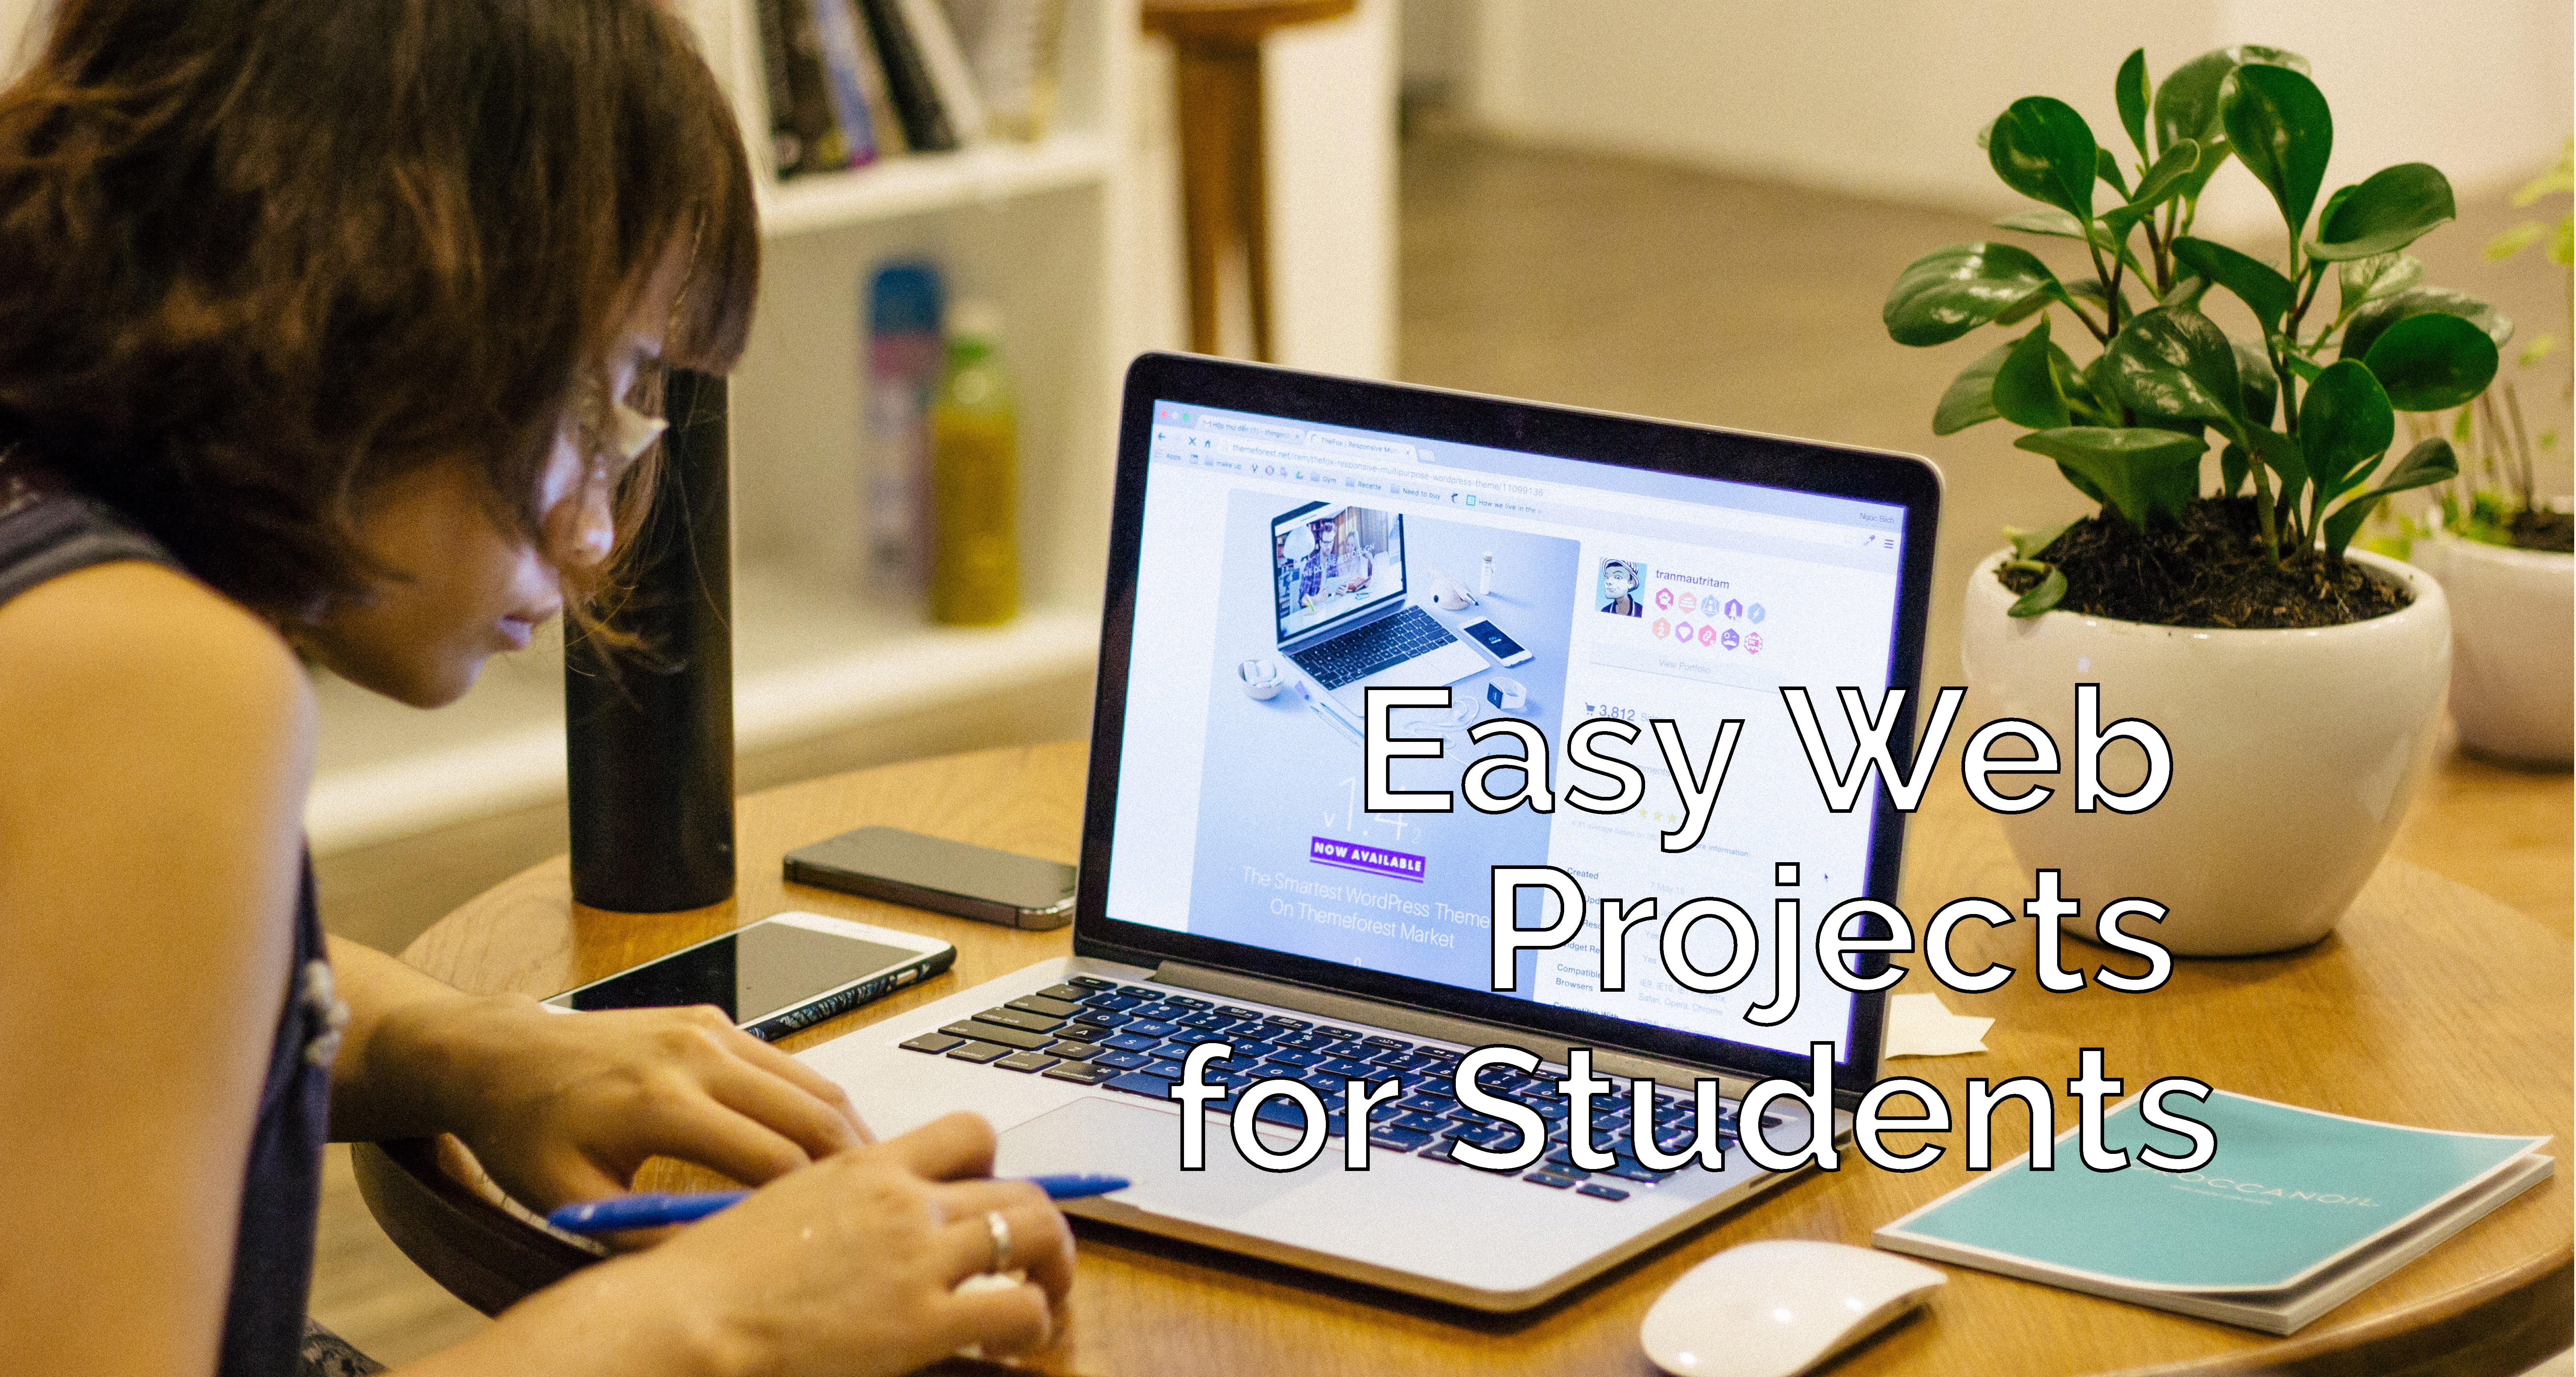 Easy Web Projects for Students